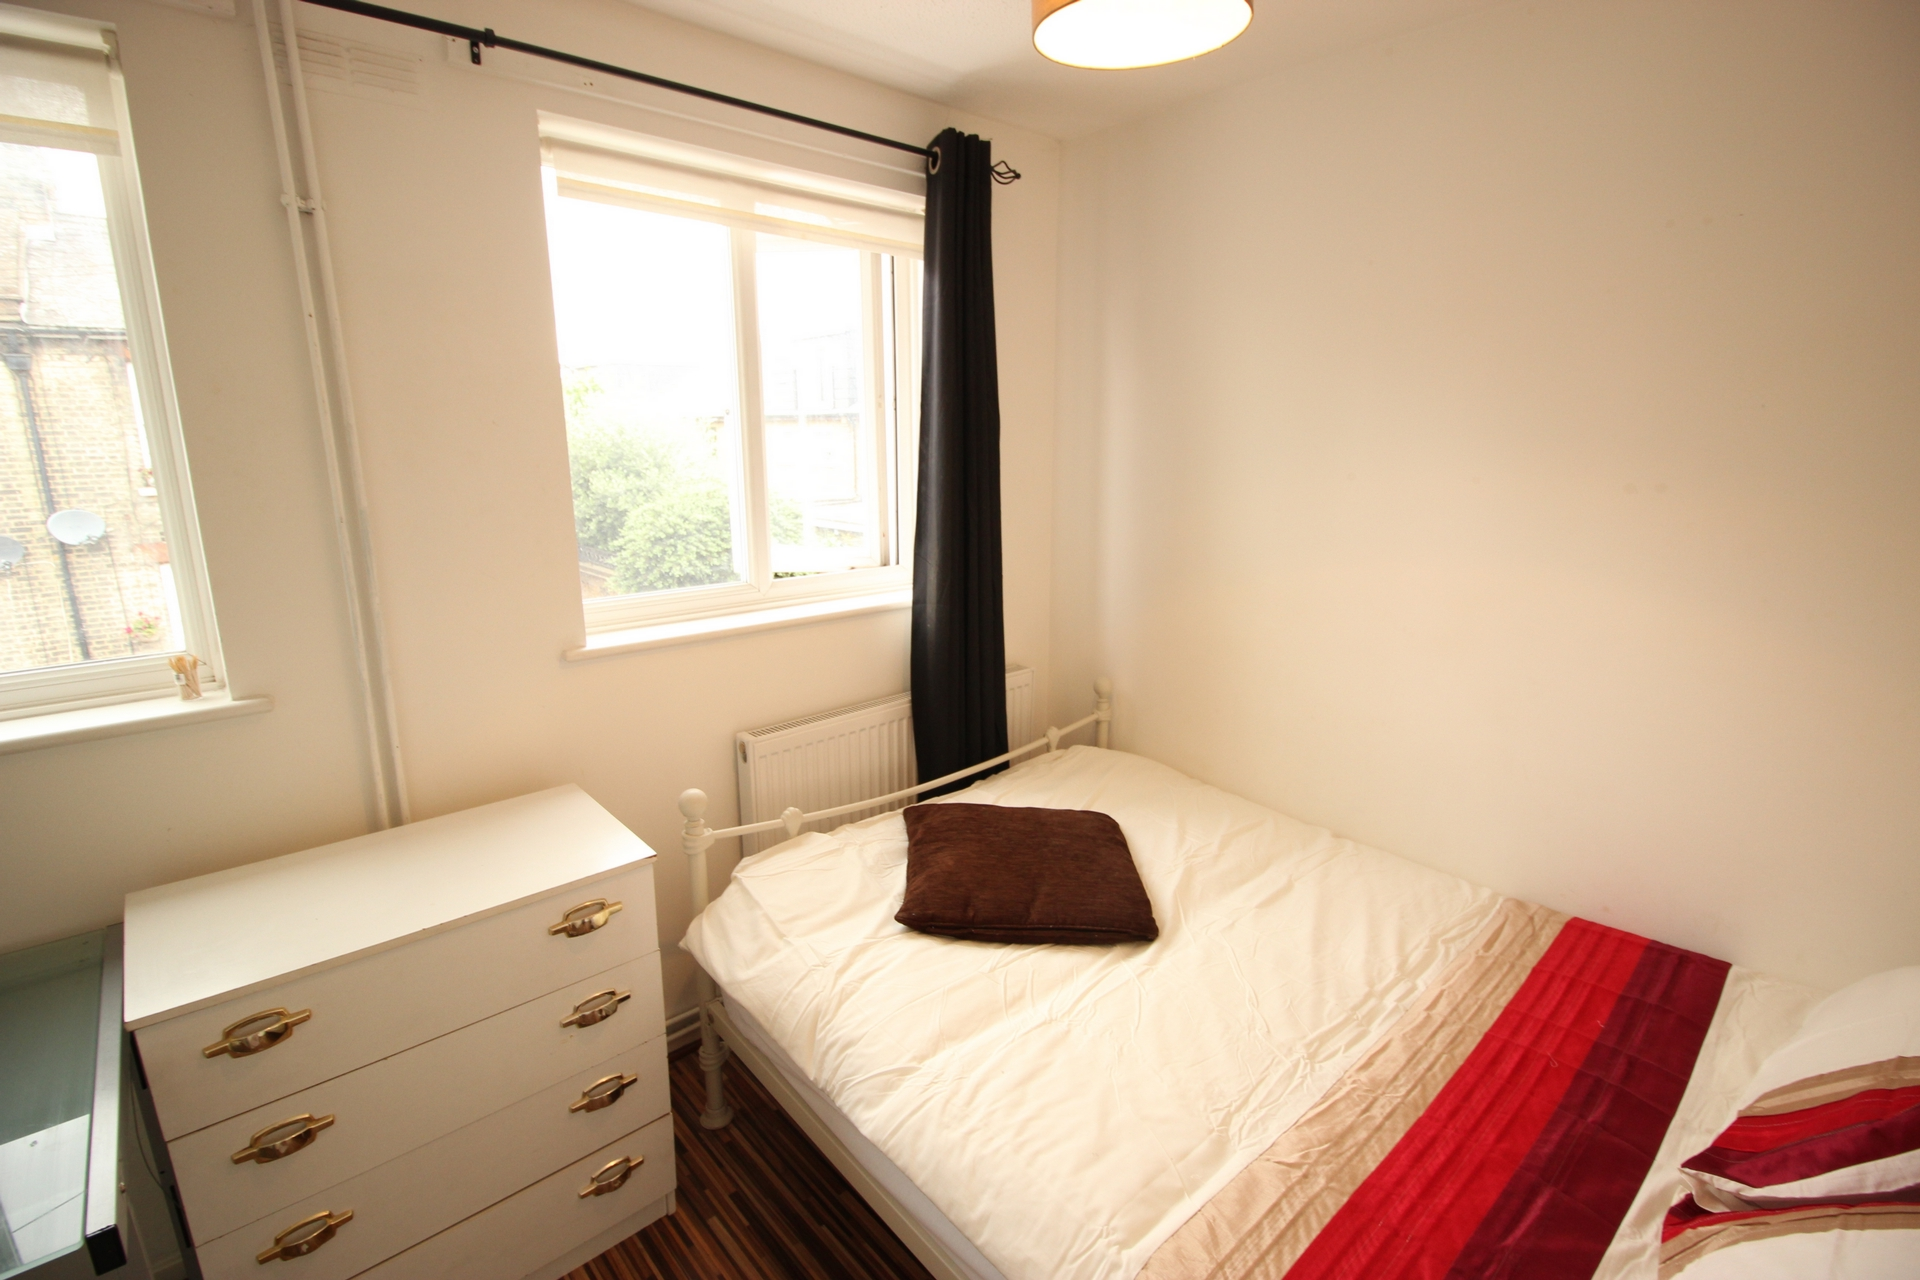 Wodseer Street  Room To Let in Brick Lane  E1